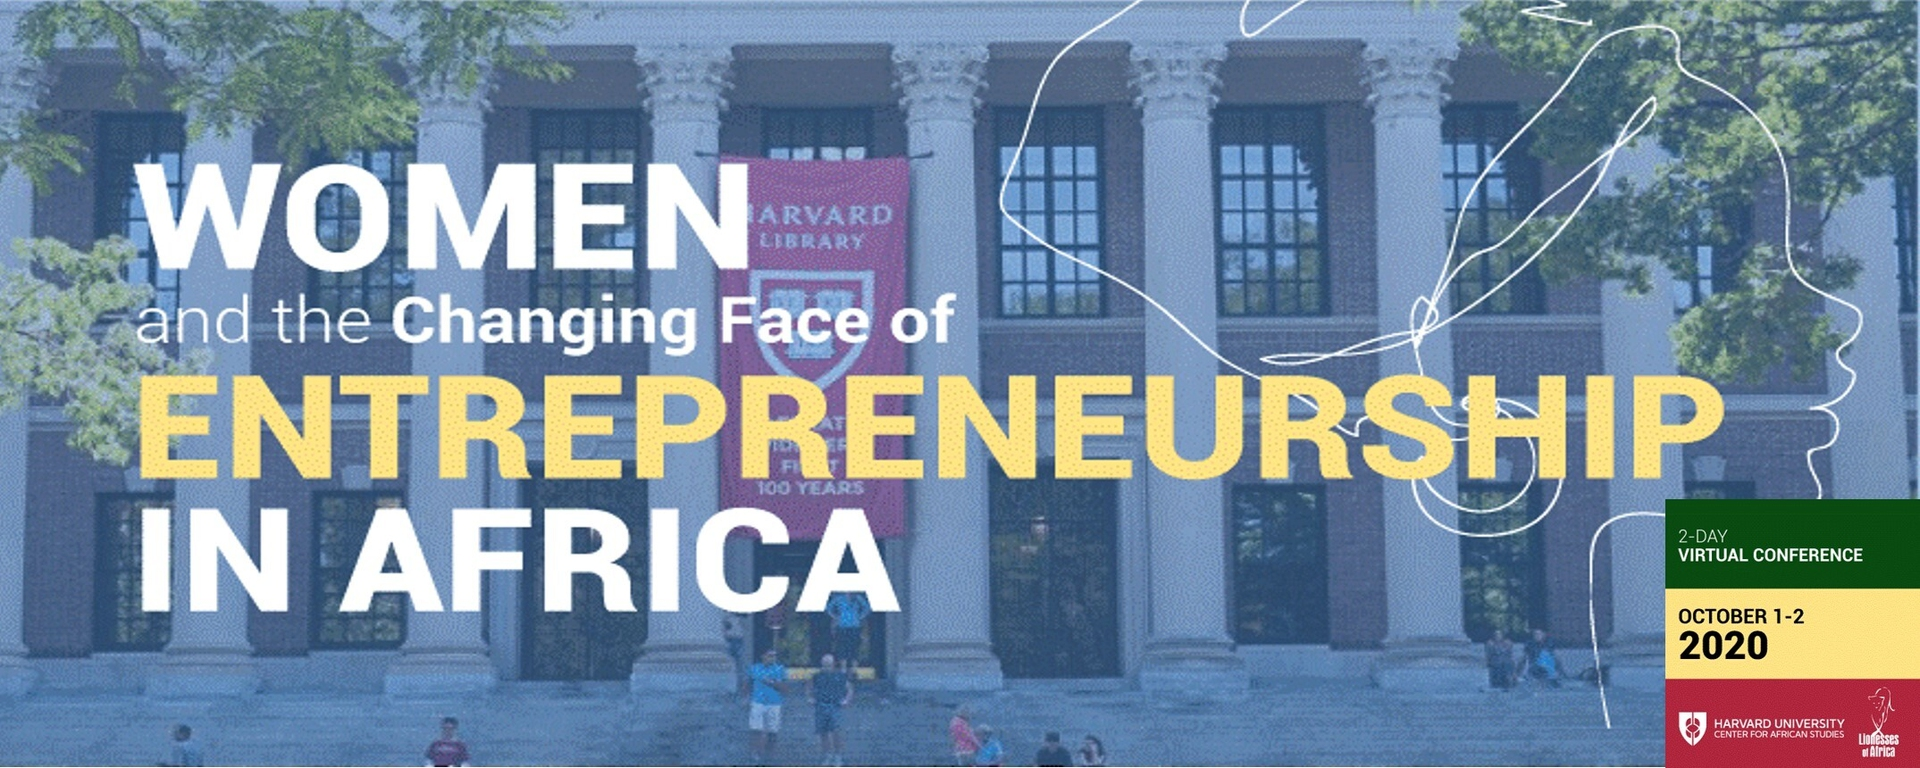 Harvard University Center for African Studies - Women and the Changing Face of Entrepreneurship in Africa Conference Movemeback African event cover image